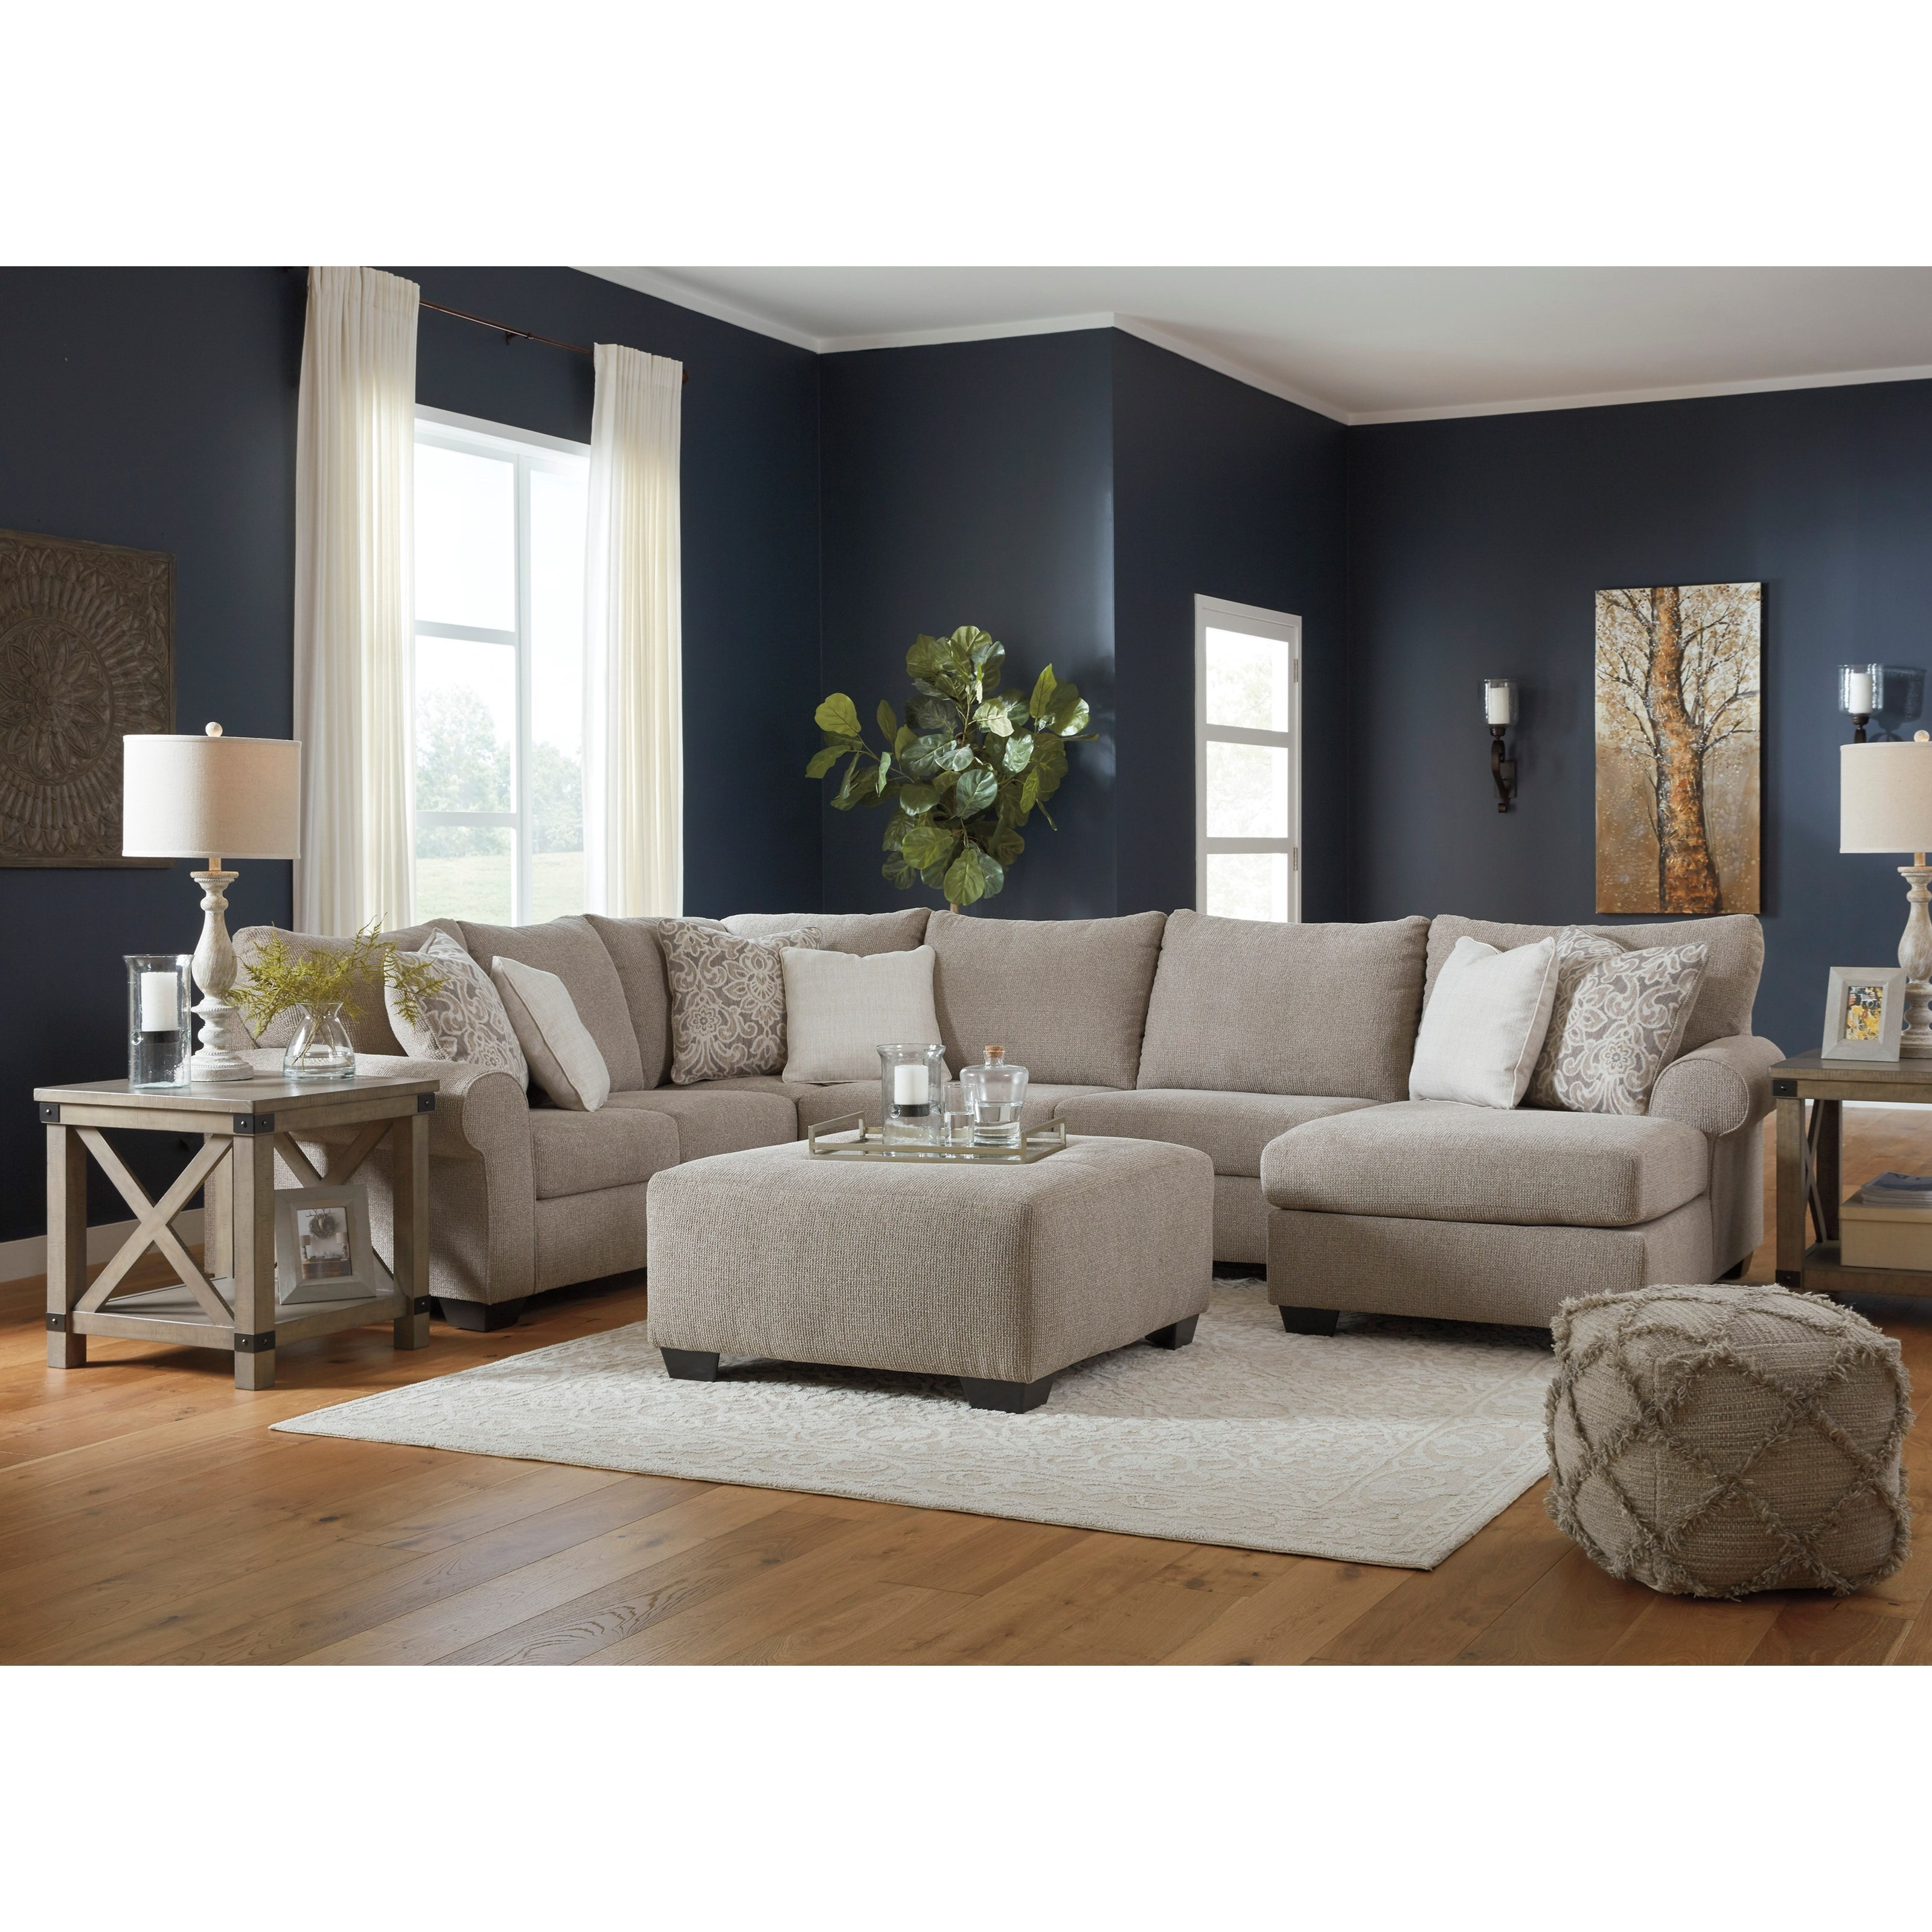 Baranello Stationary Living Room Group by Benchcraft at Rife's Home Furniture